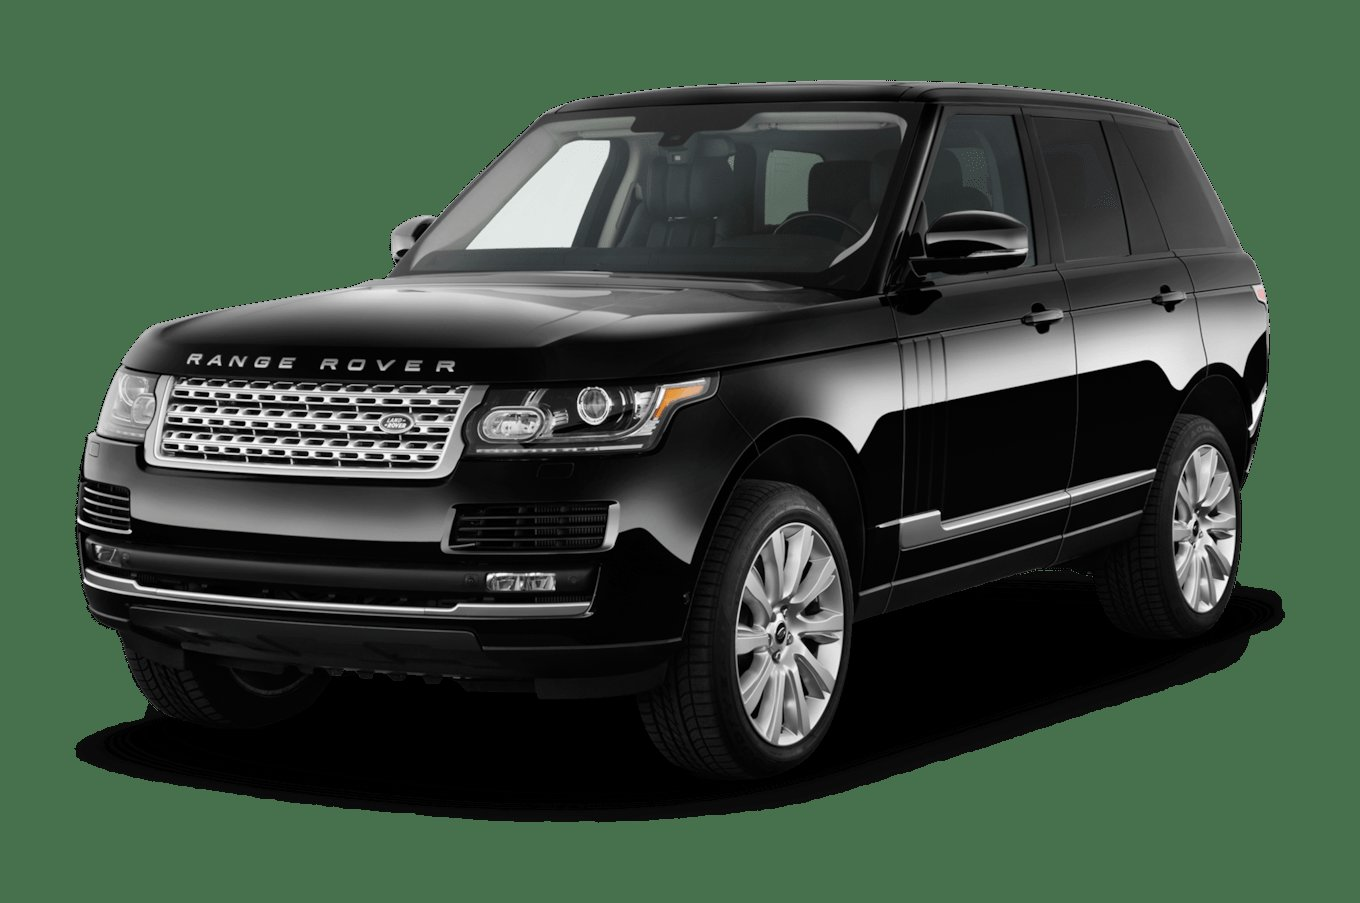 New 2016 Land Rover Range Rover Reviews Research Range Rover On This Month